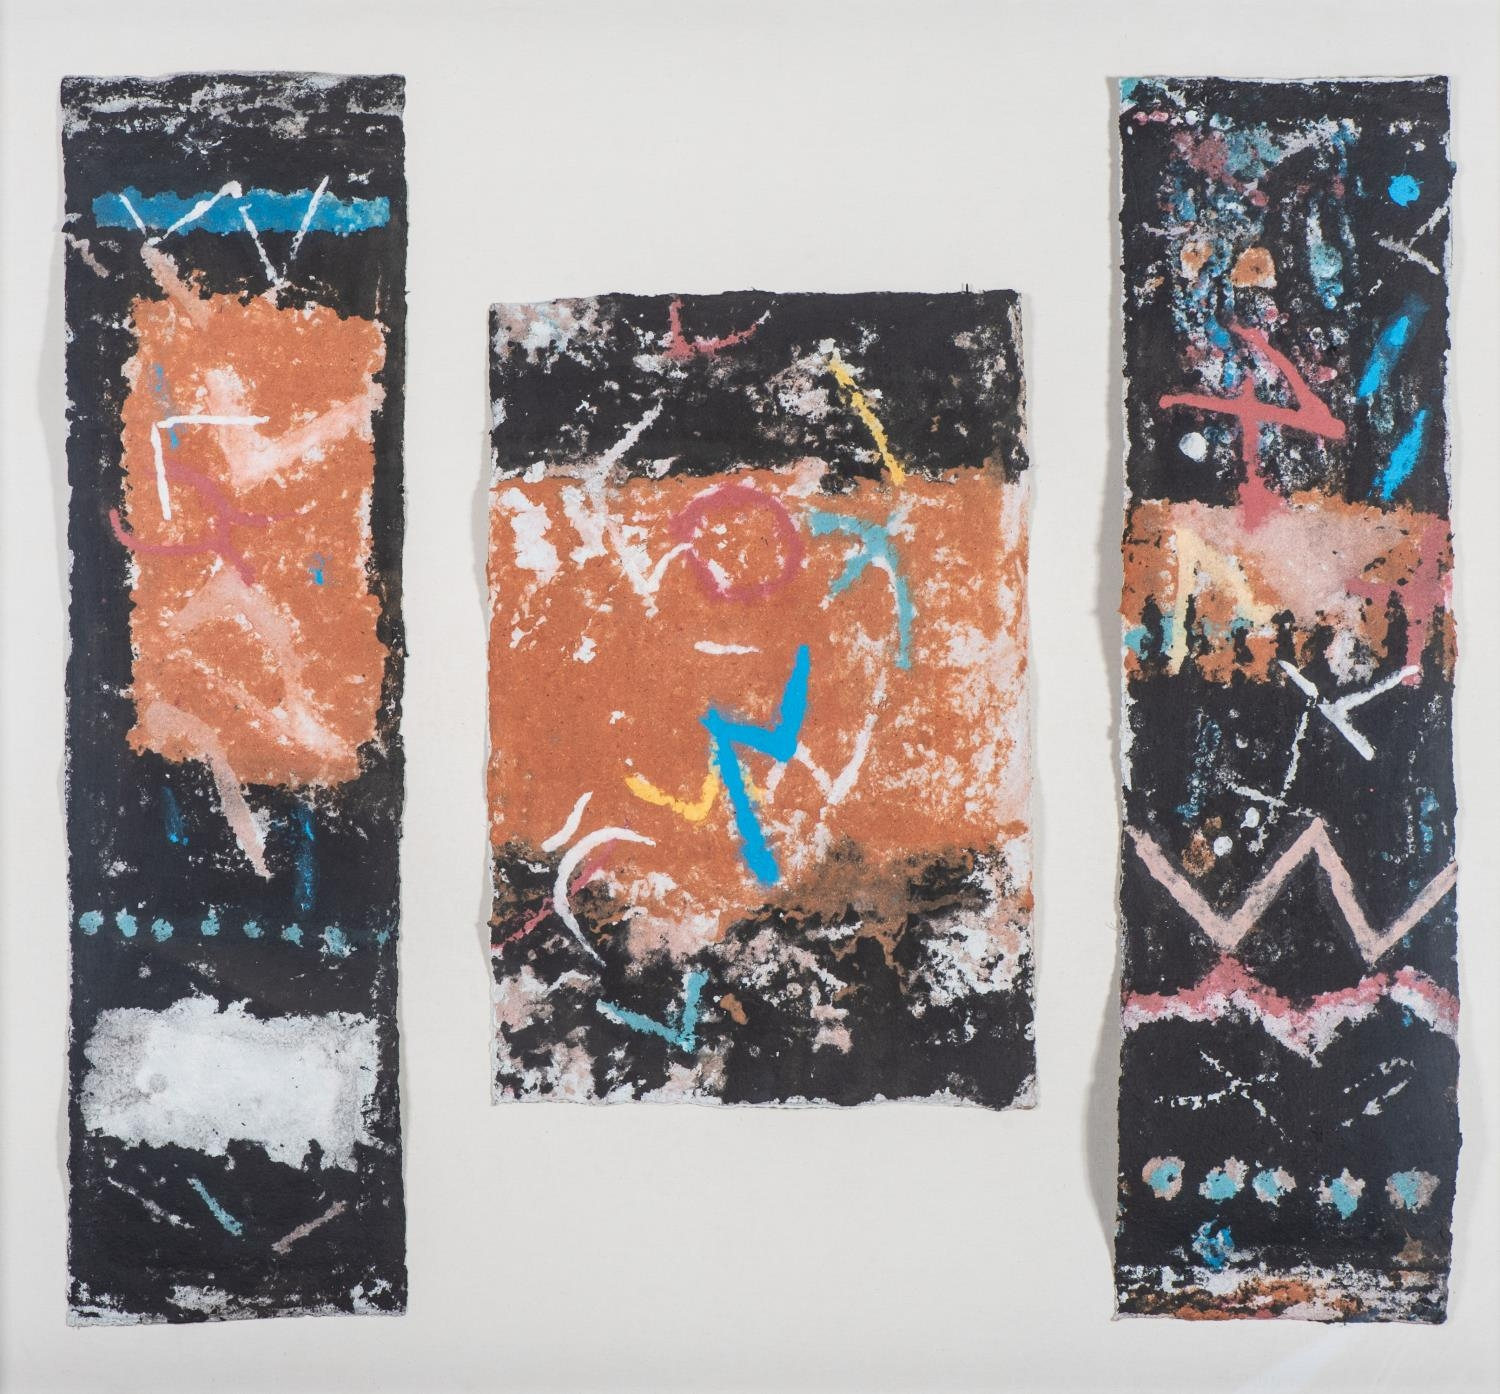 Durant Basi Sihlali (South Africa 1935 ? 2004): UNTITLED, triptych